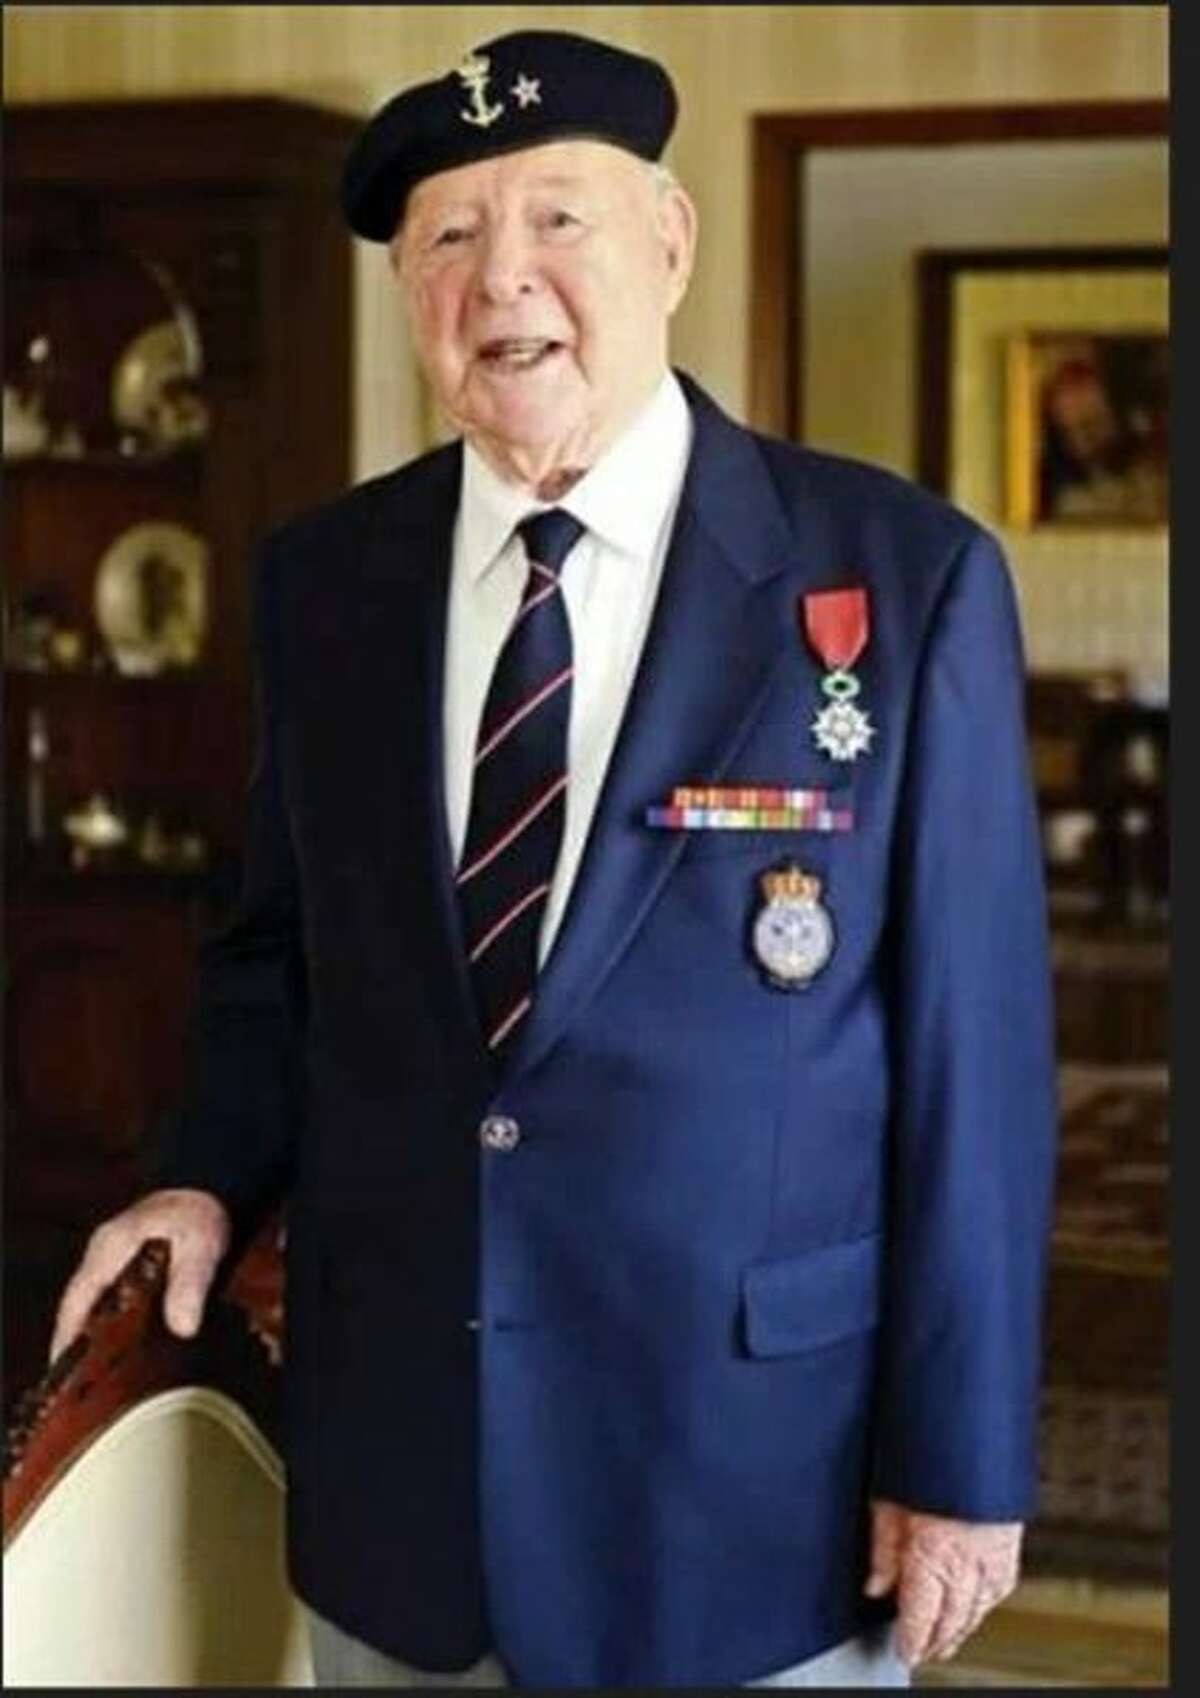 Wilton resident Trygve Hansen with several of the medals he has received for his service. - Contributed photo